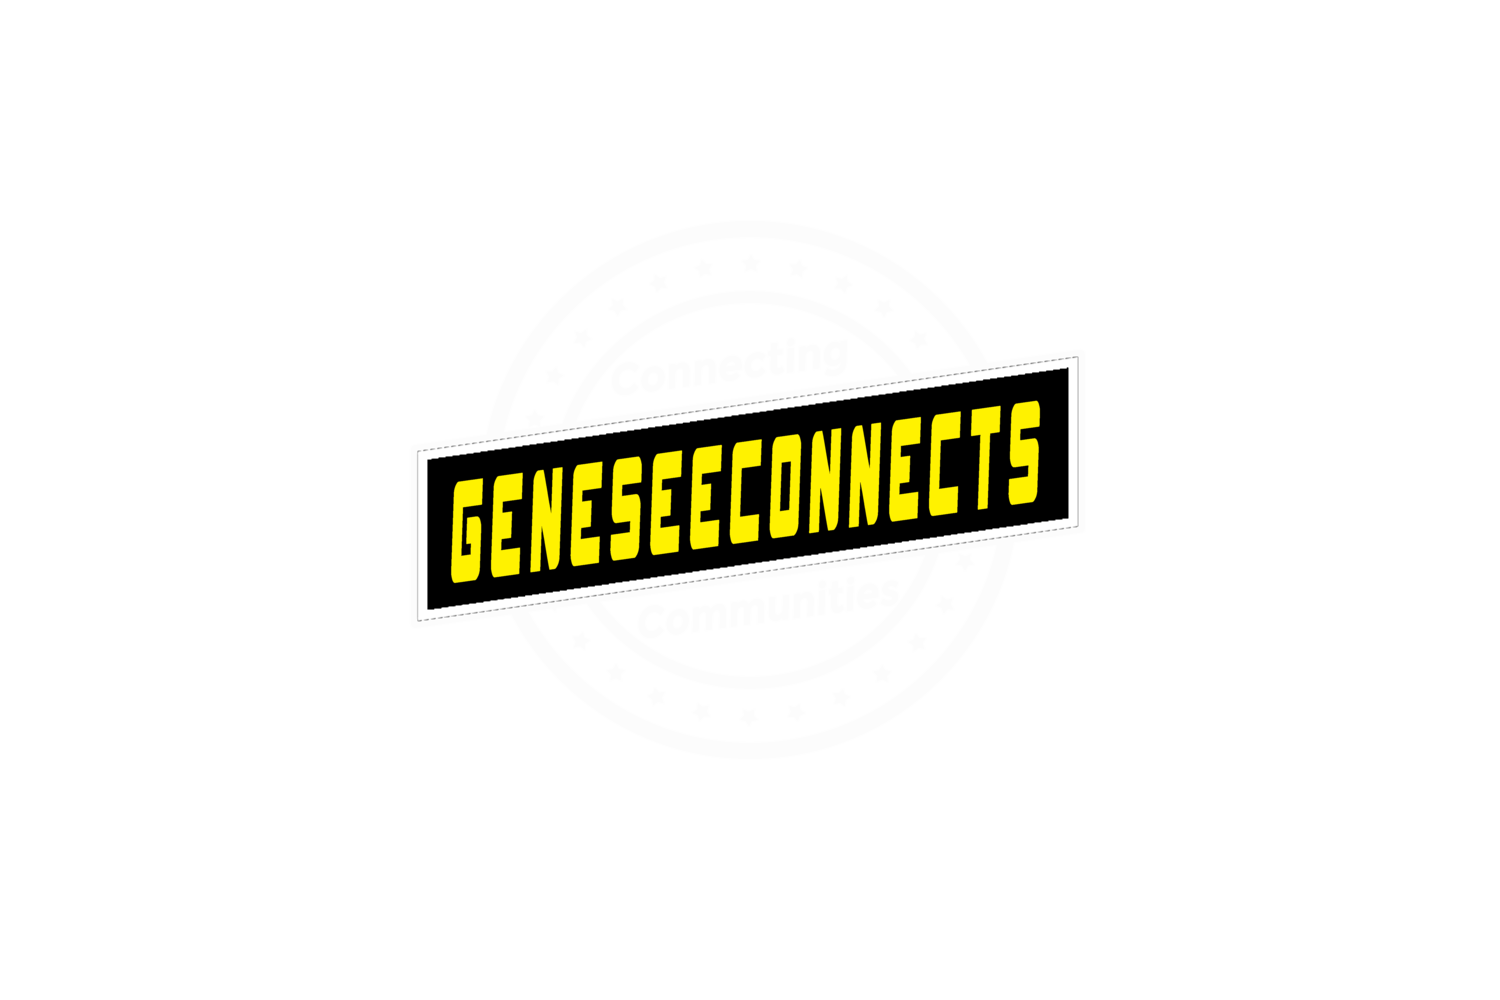 Geneseeconnects